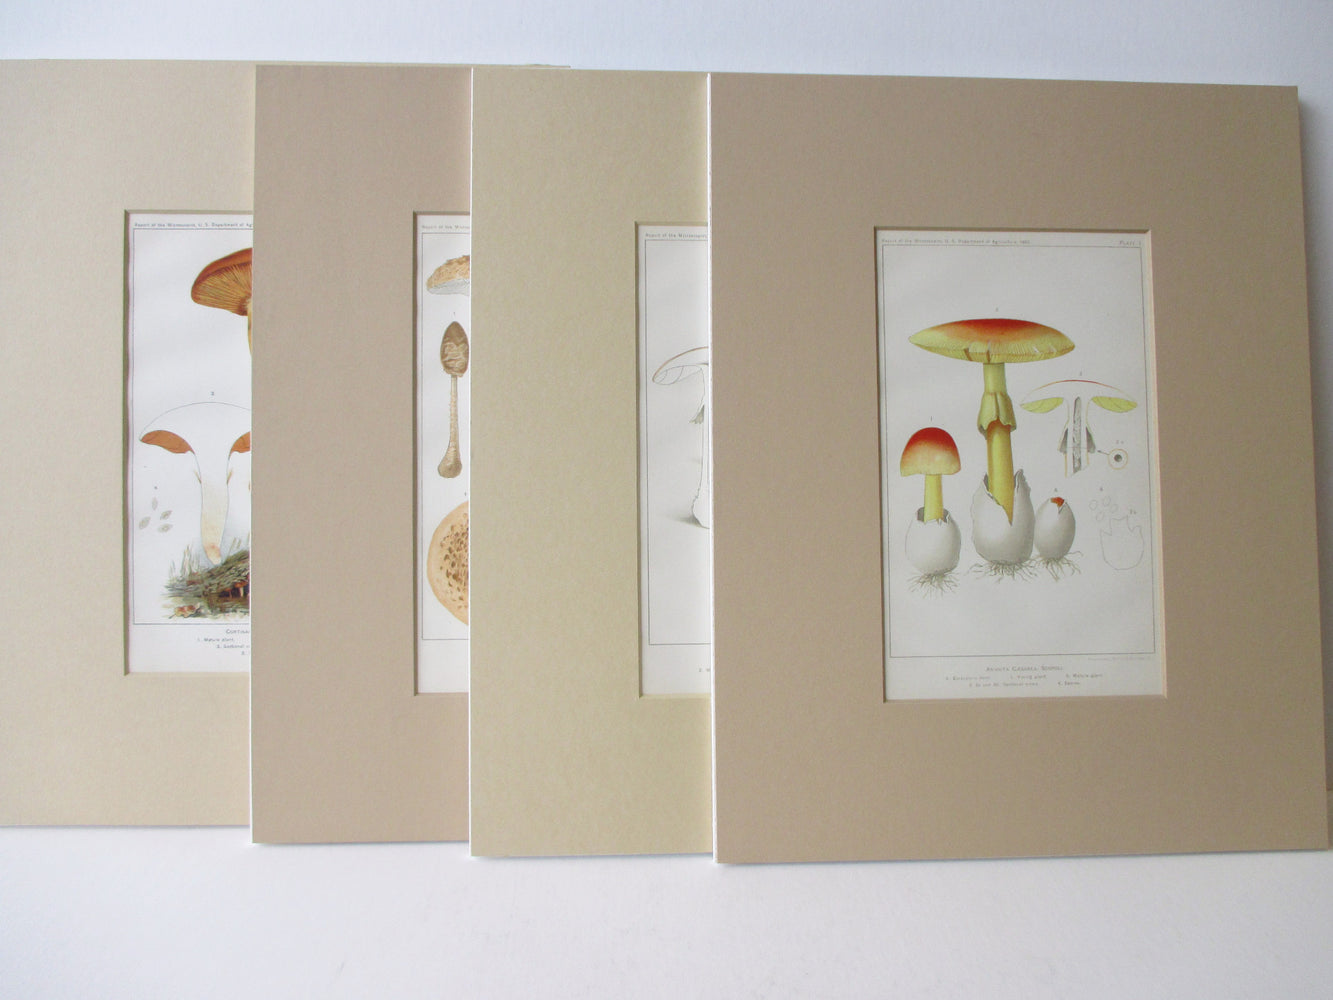 Four Matted Mushroom Prints (Originals) - Amanita caesarea, Amanita muscaria, Cortinarius turmalis, Parasol mushroom - Original Prints - Stomping Grounds